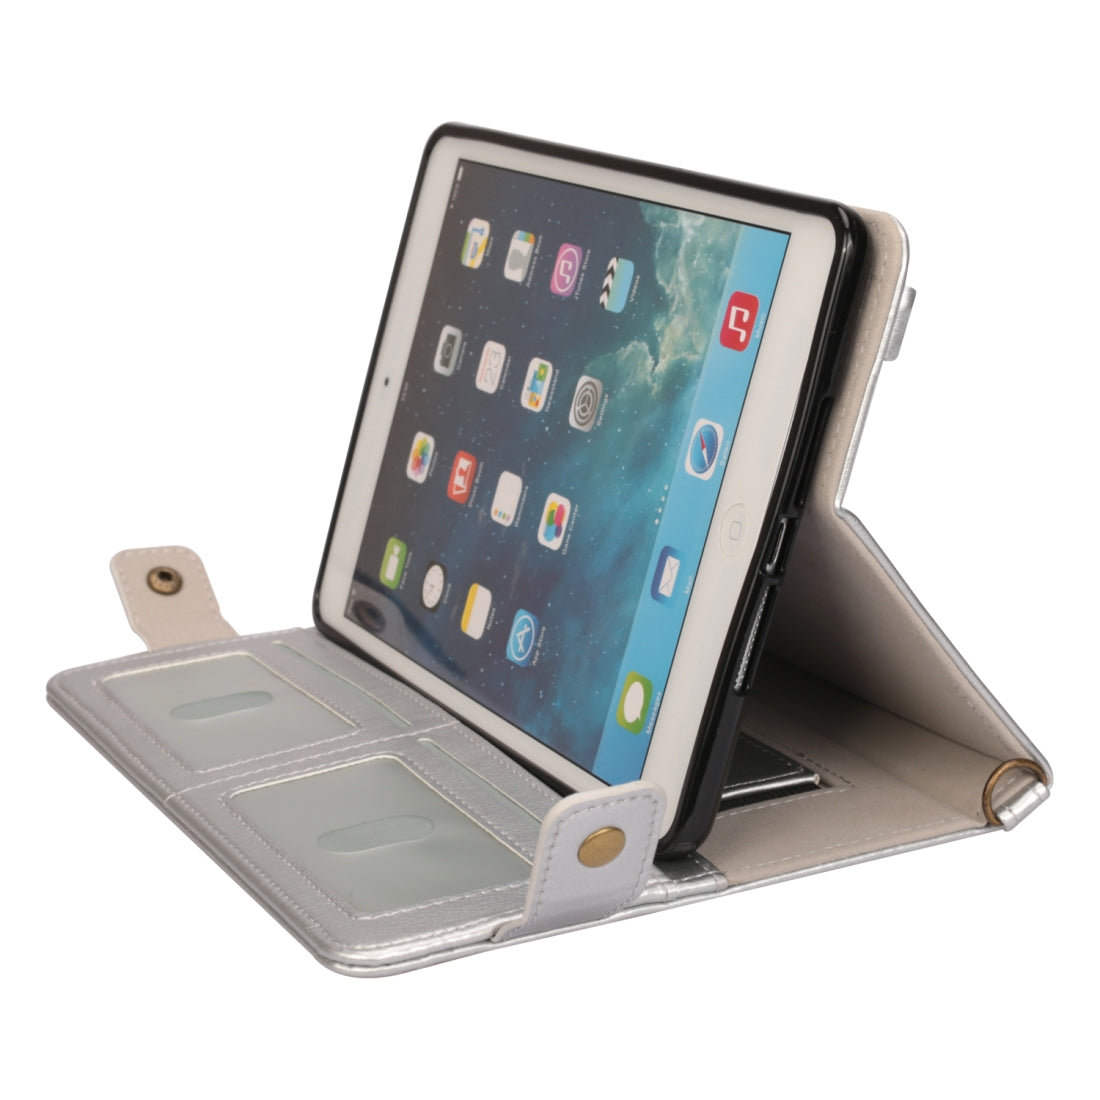 For iPad mini 5 / 4 / 3 / 2 / 1 Envelope Horizontal Flip PU Leather Case with Card Slots & Pen Slots